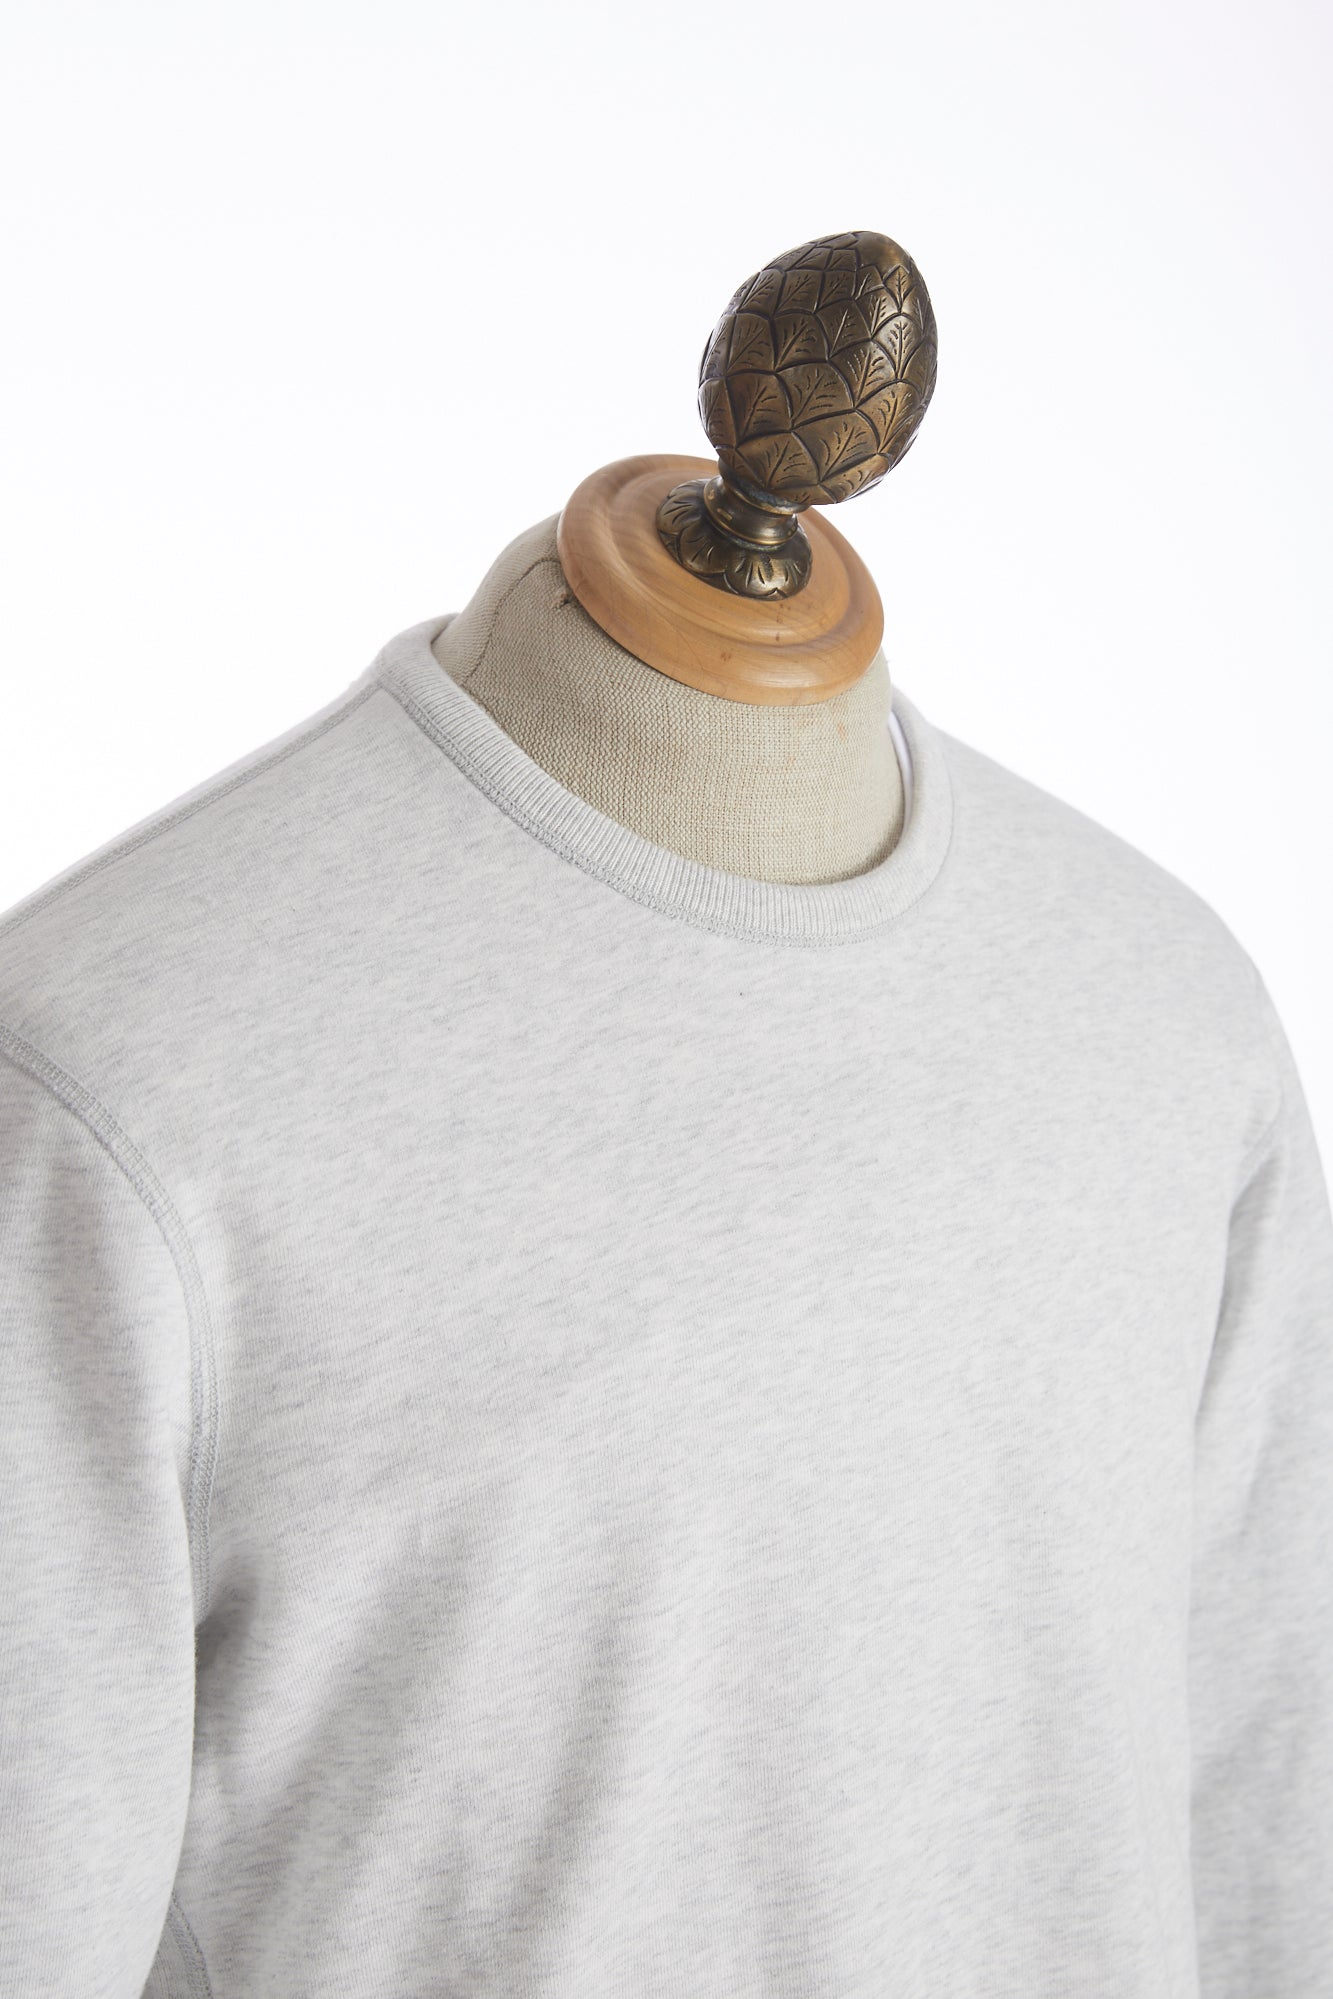 Reigning Champ Heather Ash Midweight Terry Crewneck Sweater